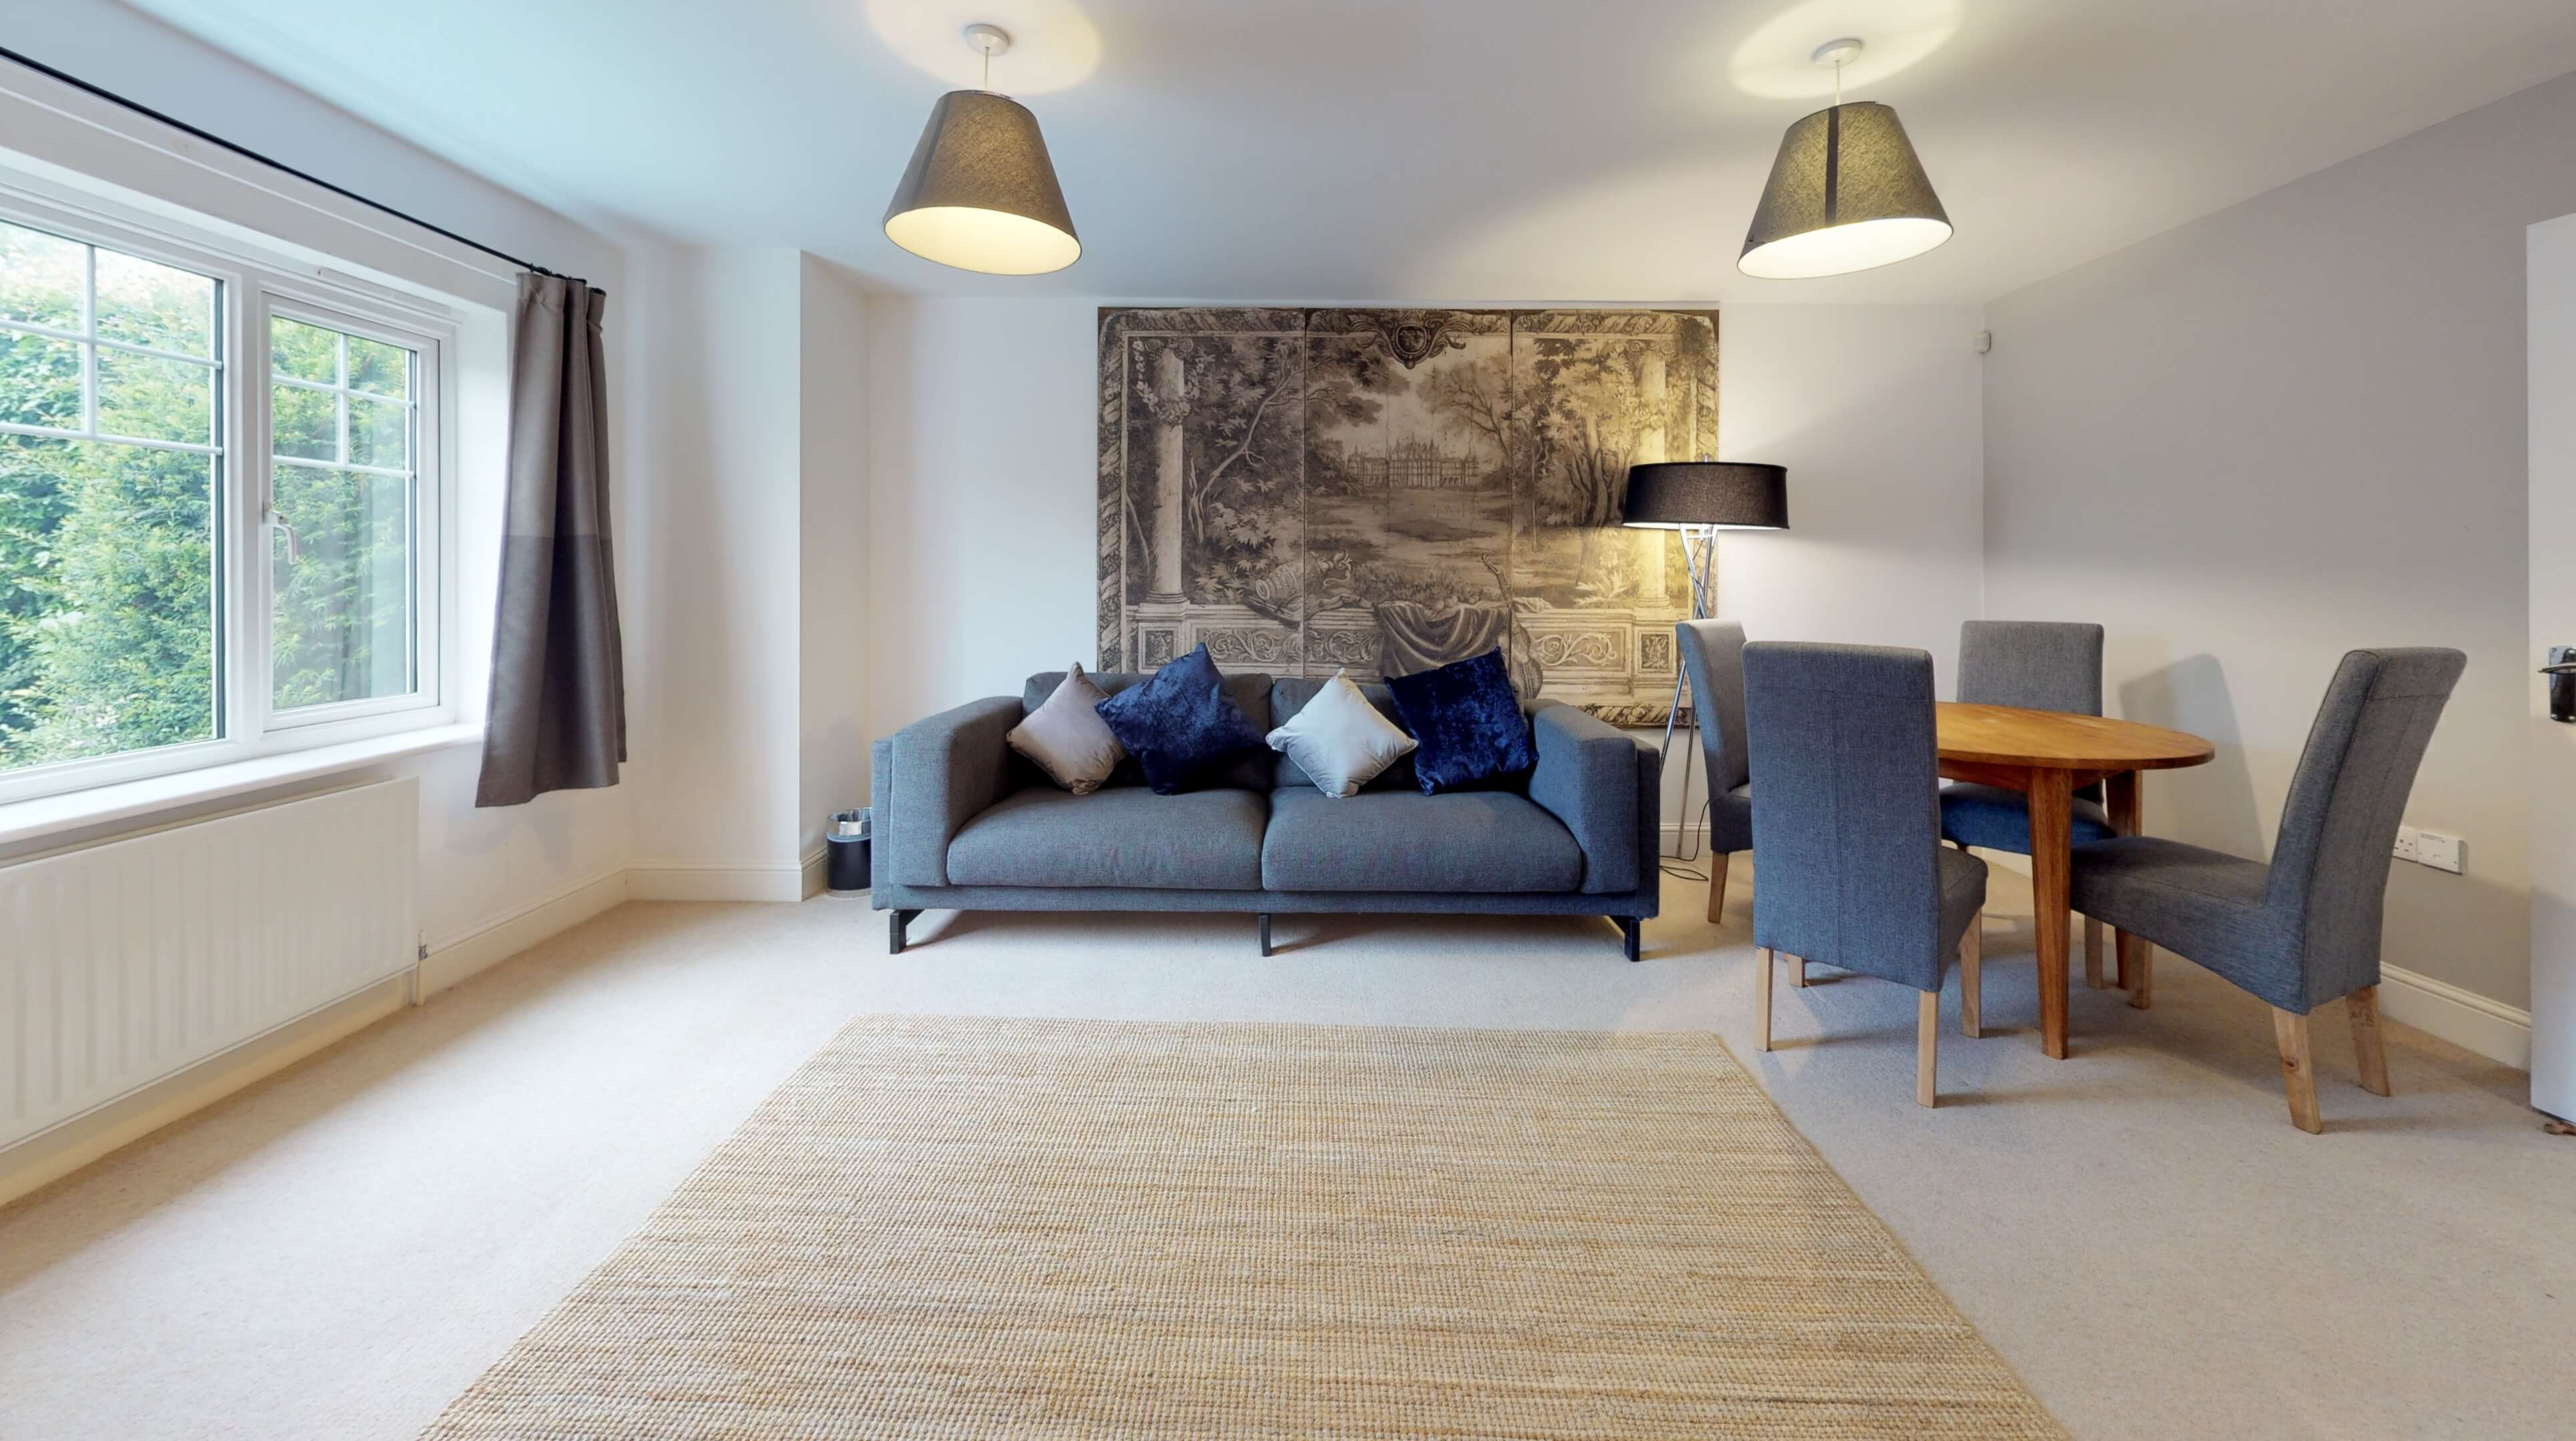 Oxford Serviced Apartments Hensington Suite Living Room Wide